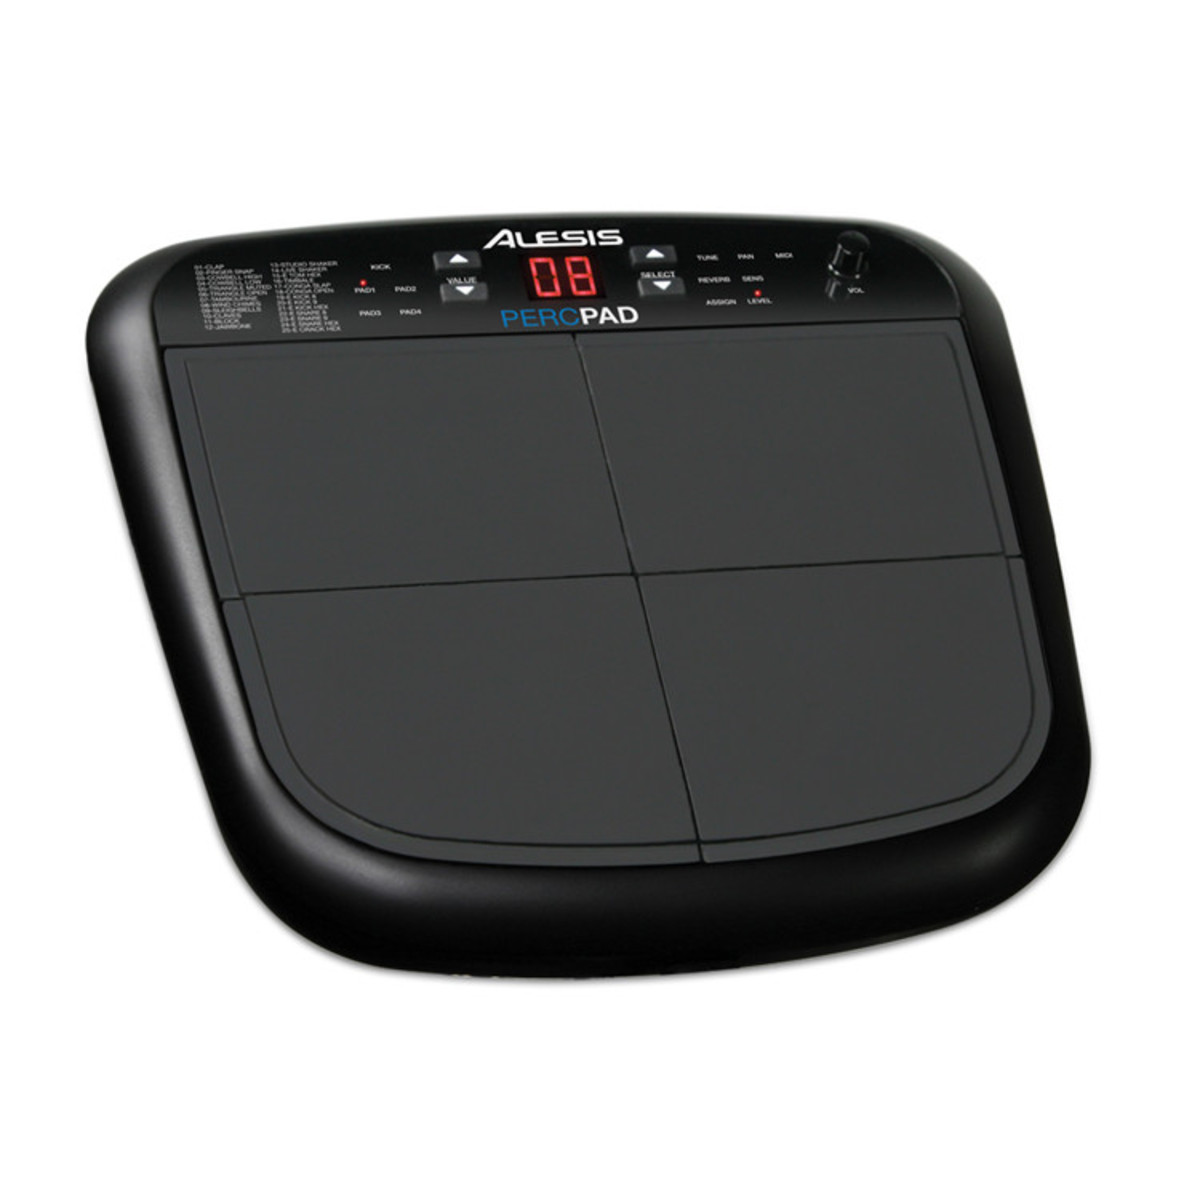 Alesis Percpad Compact Electronic Percussion Instrument At